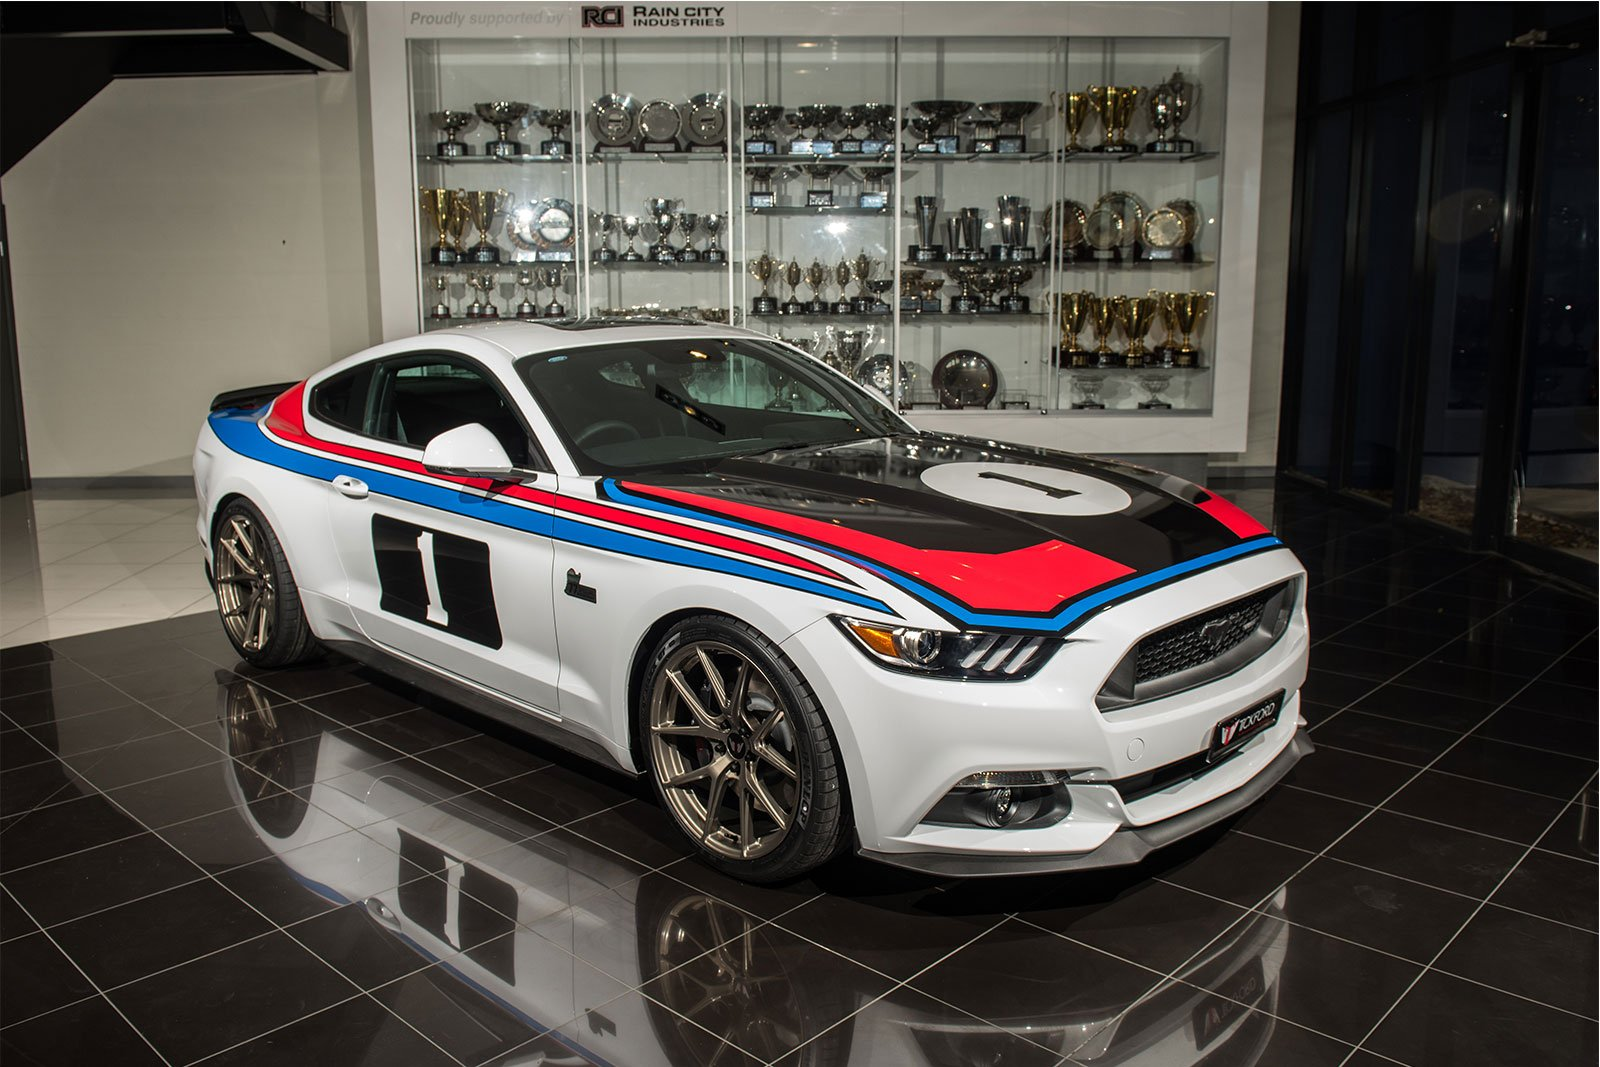 New Tickford Mustang Celebrates Ford's 1977 Bathurst 1000 Win